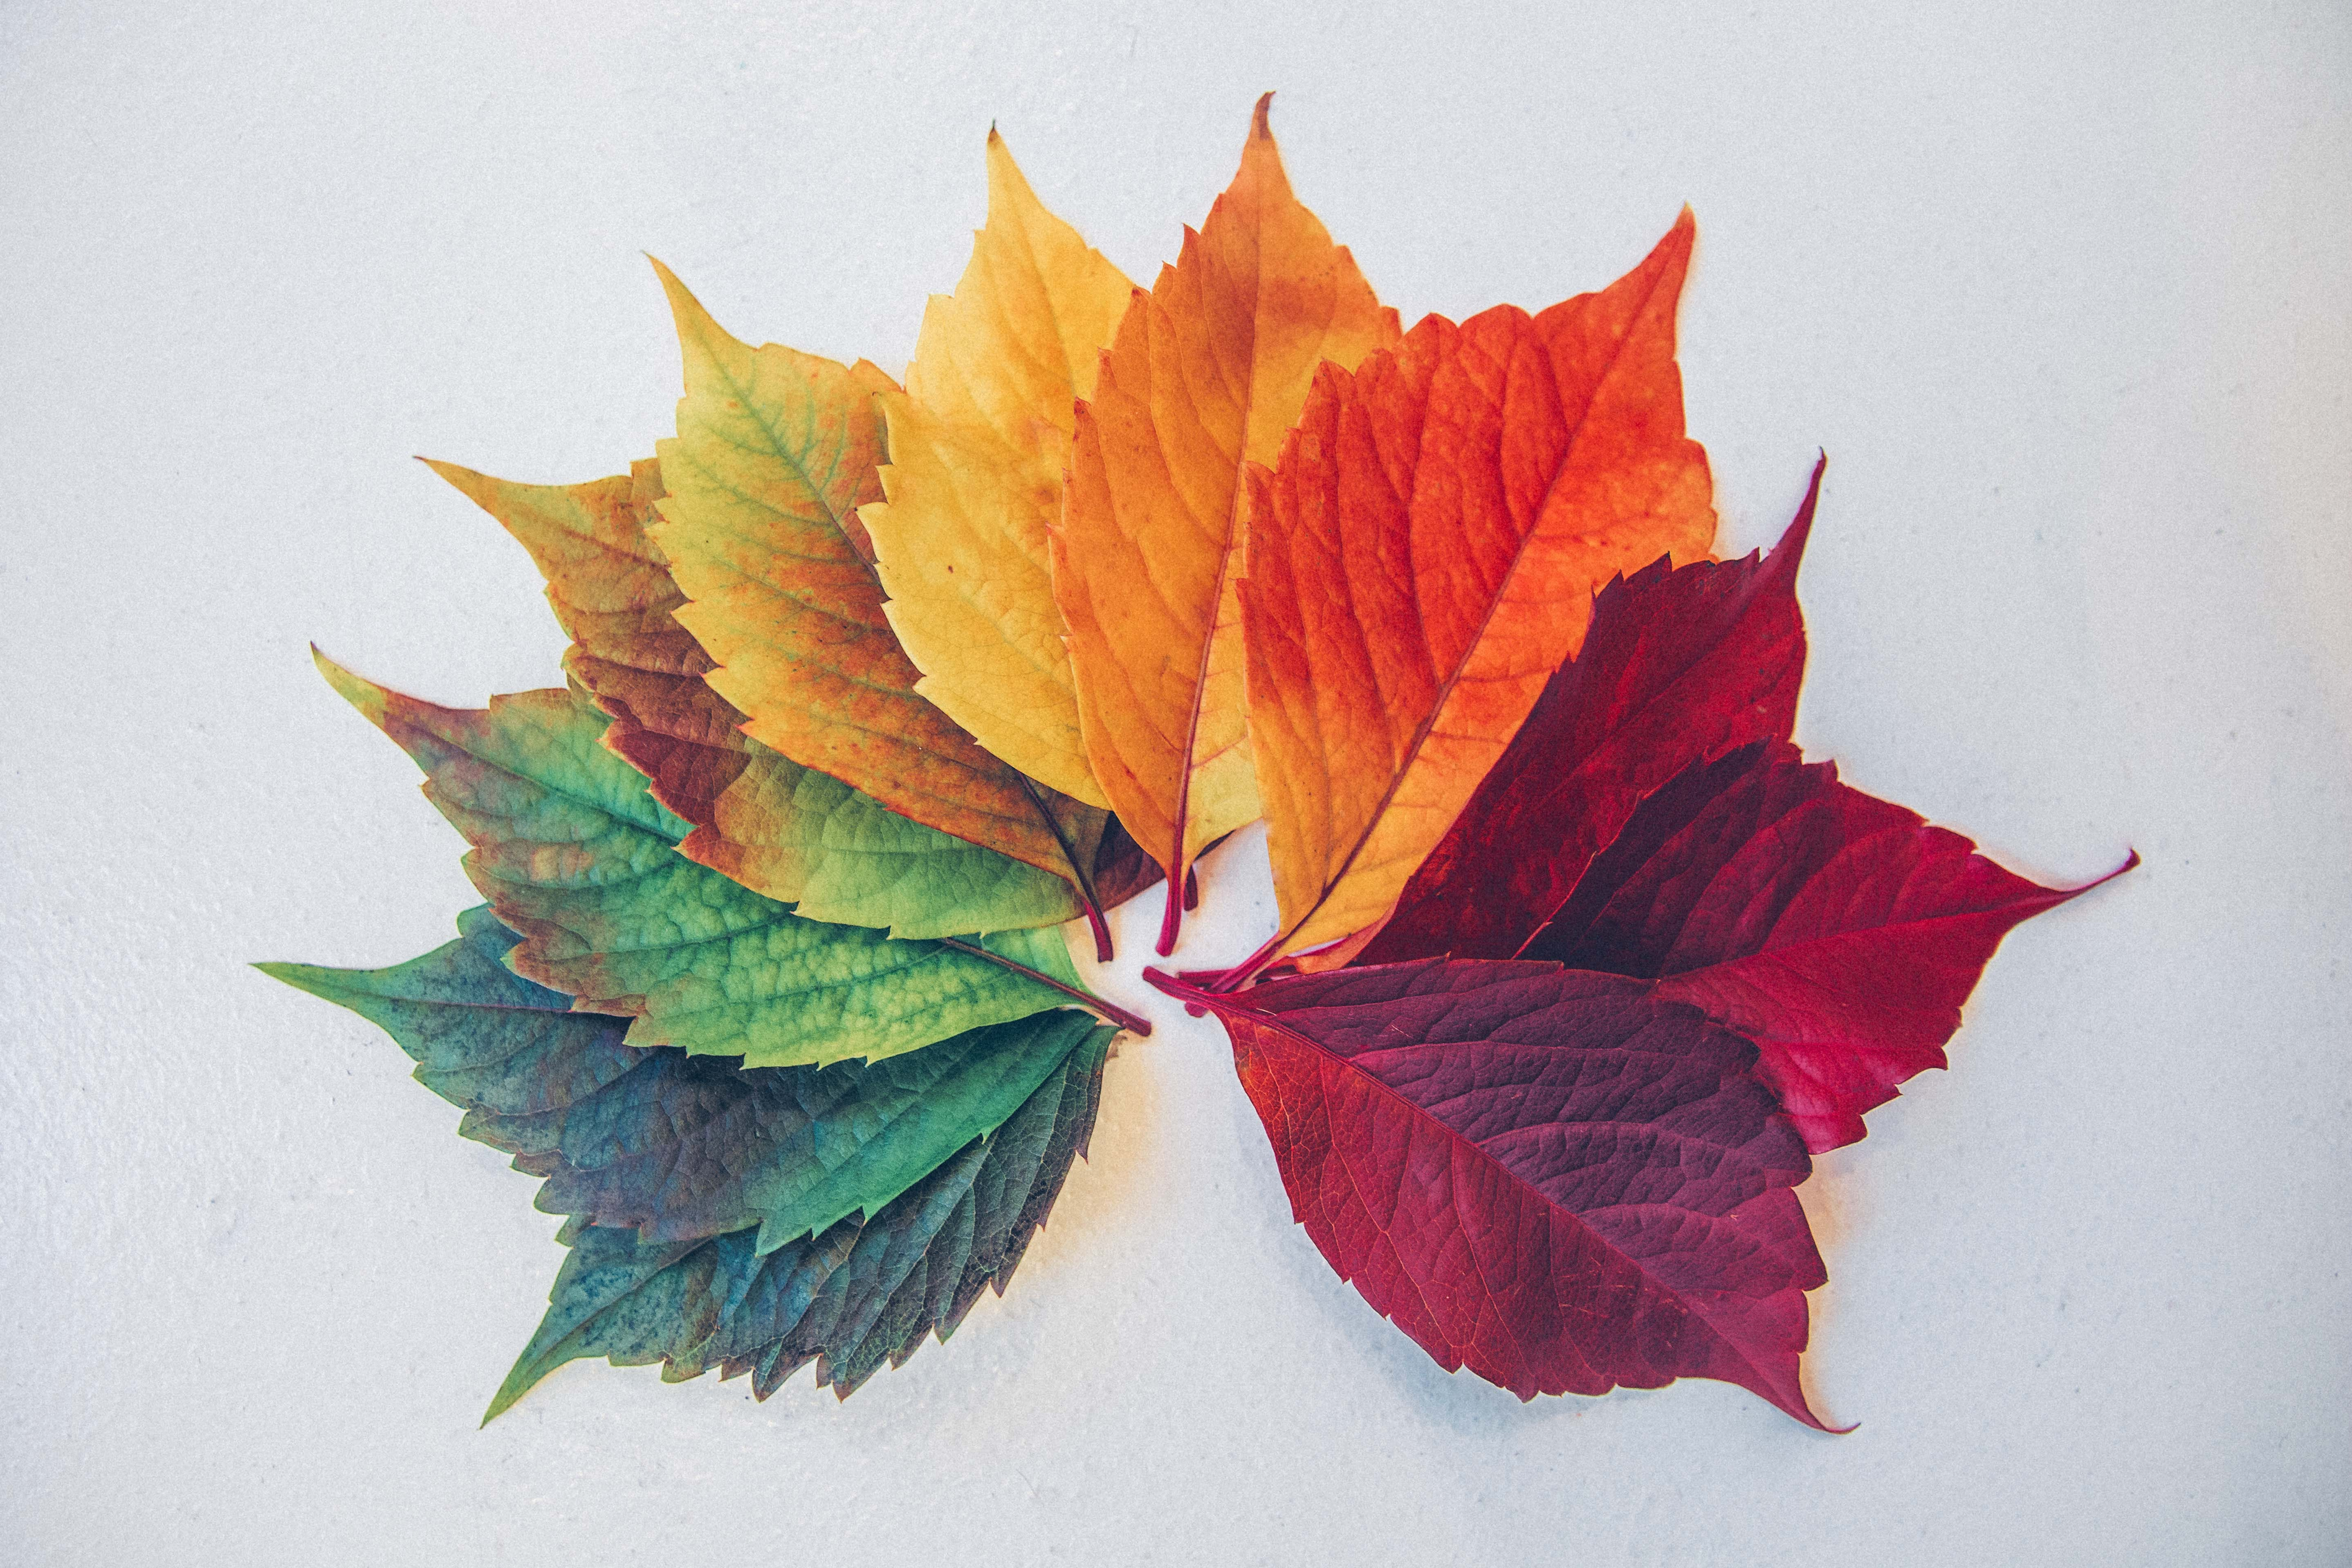 Different coloured leaves arranged in a semi circle creating a rainbow effect from green to red.